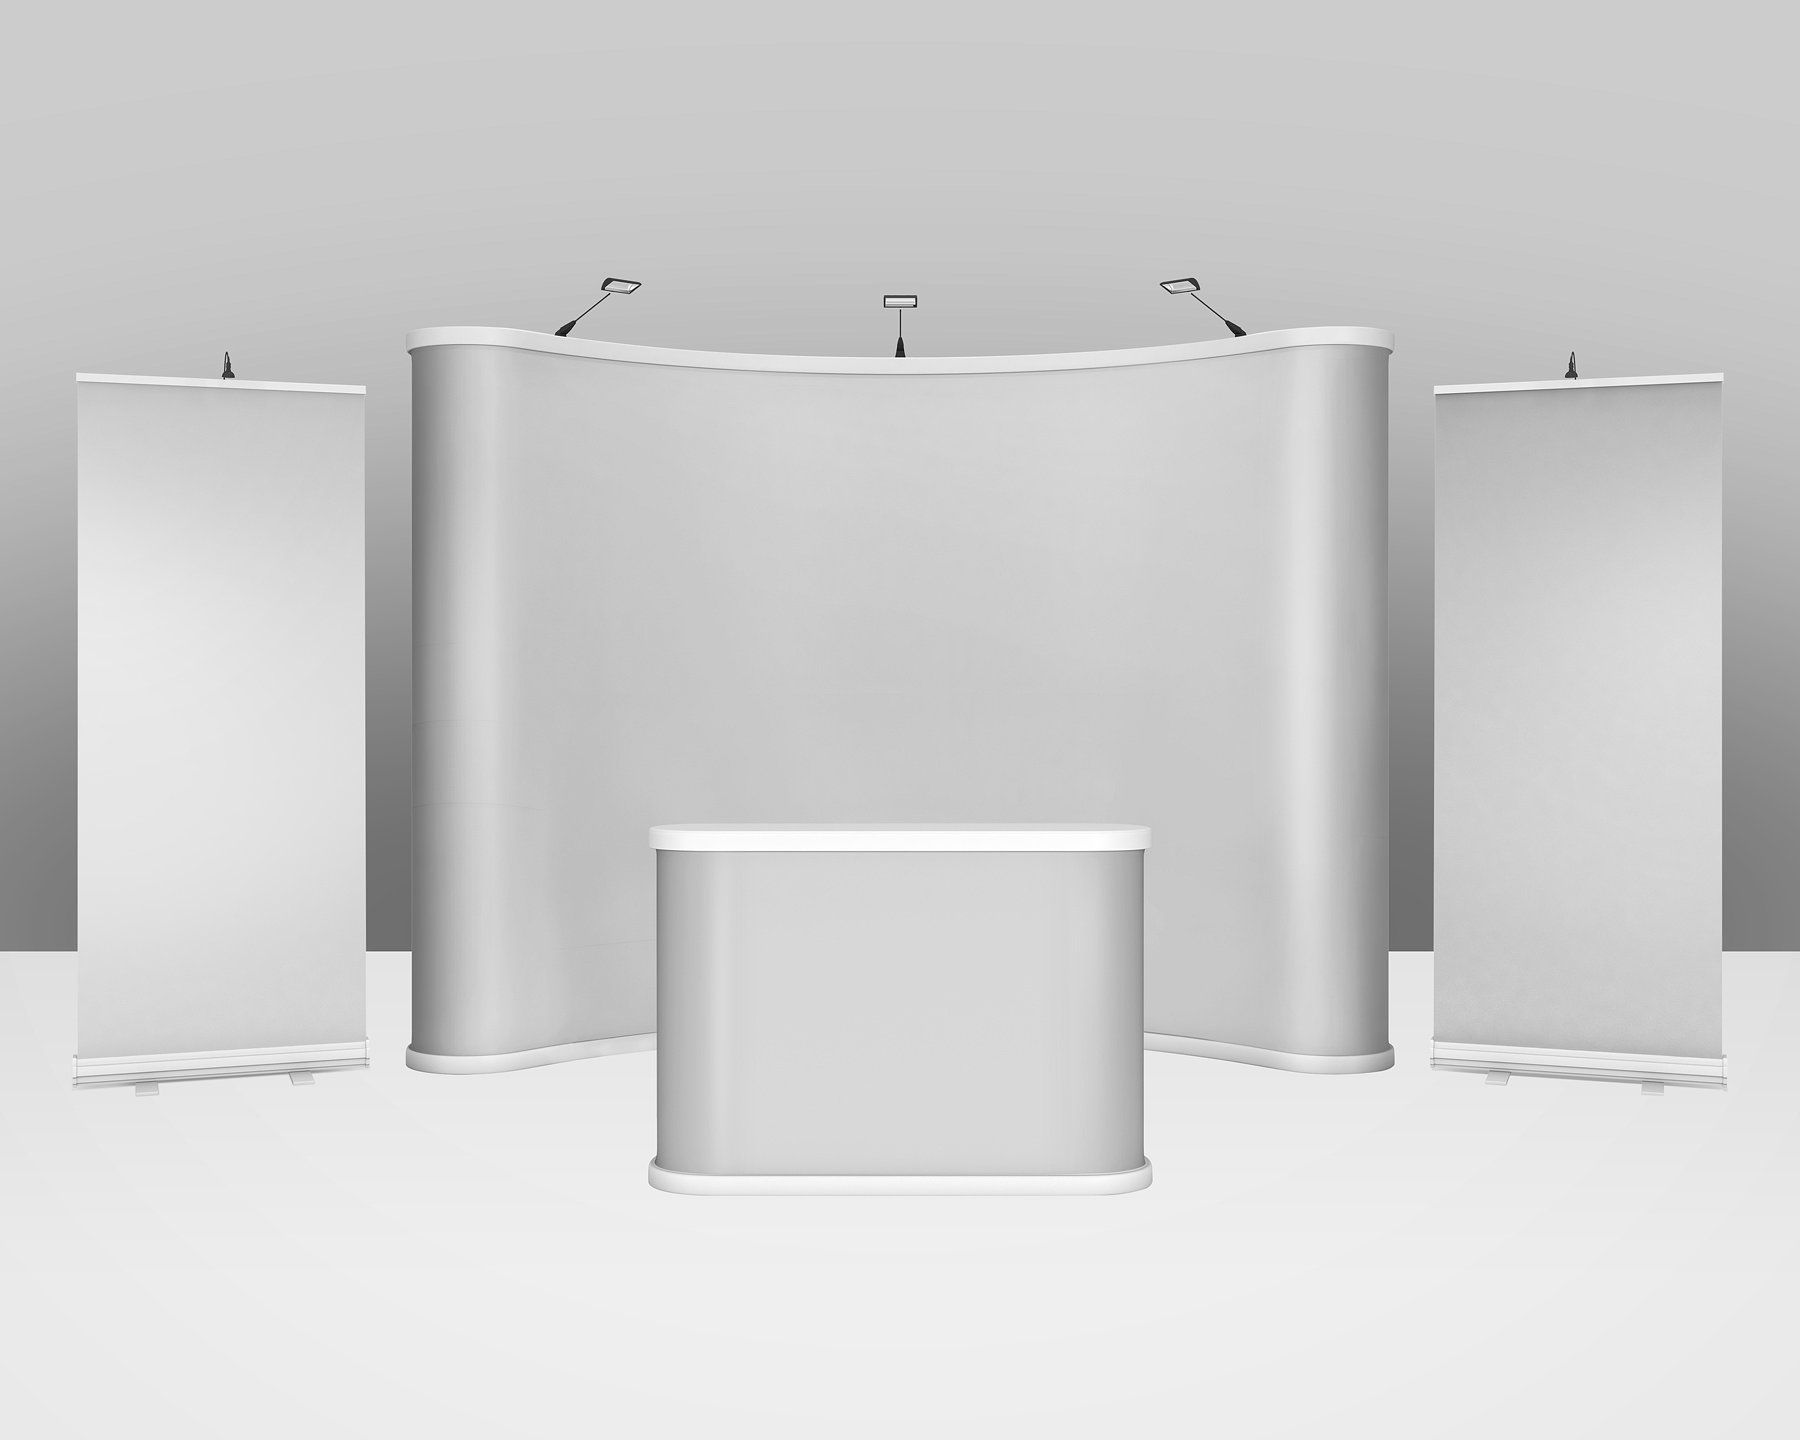 Trade Show Exhibition Booth Mockup By Vecto Designs On Creativemarket Trade Show Booth Design Exhibition Booth Mockup